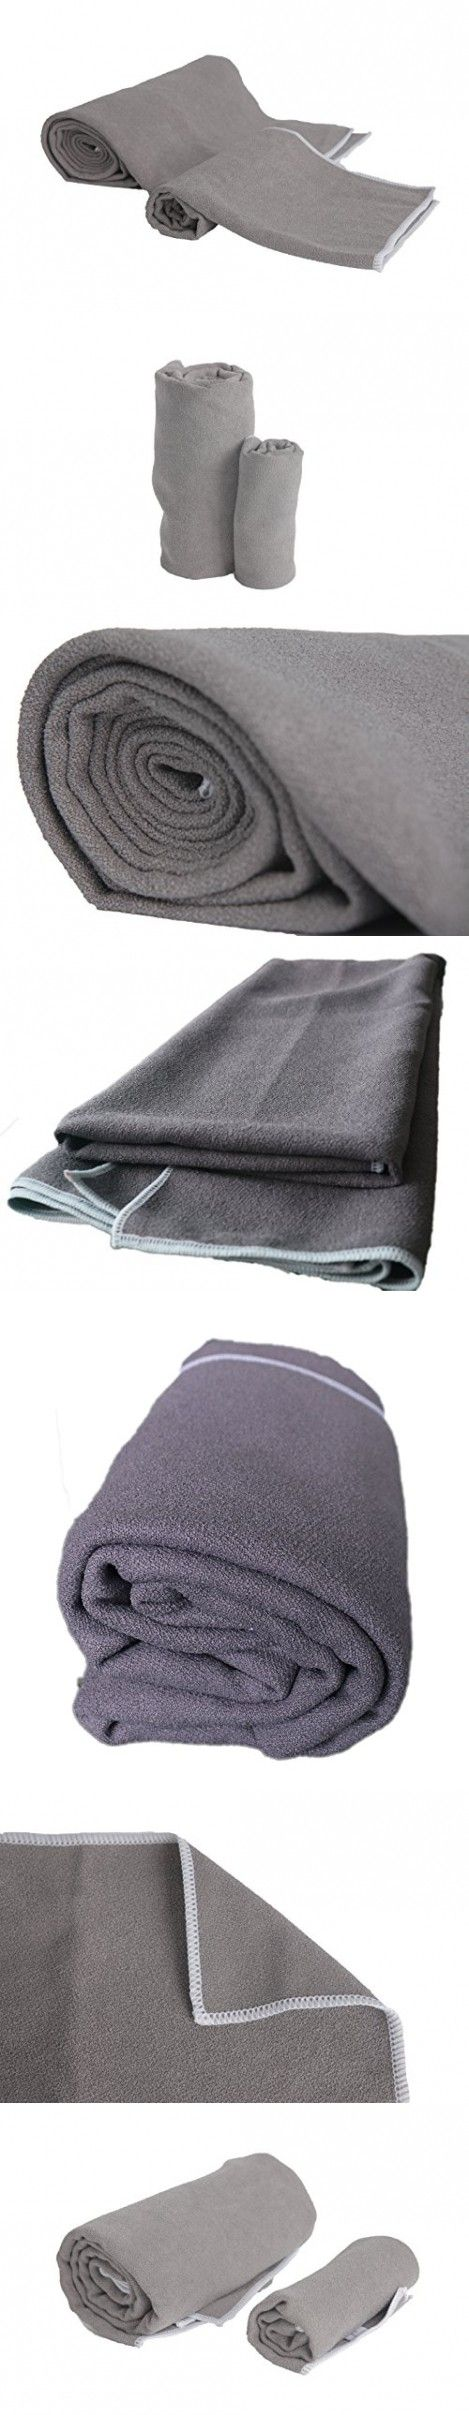 LUXEHOME Microfiber,Anti-Slip,Super Absorbent Hot Yoga Towel Kit, Include 1 Yoga Towel and 1 Hand Towel, Mat Size Length (Grey)